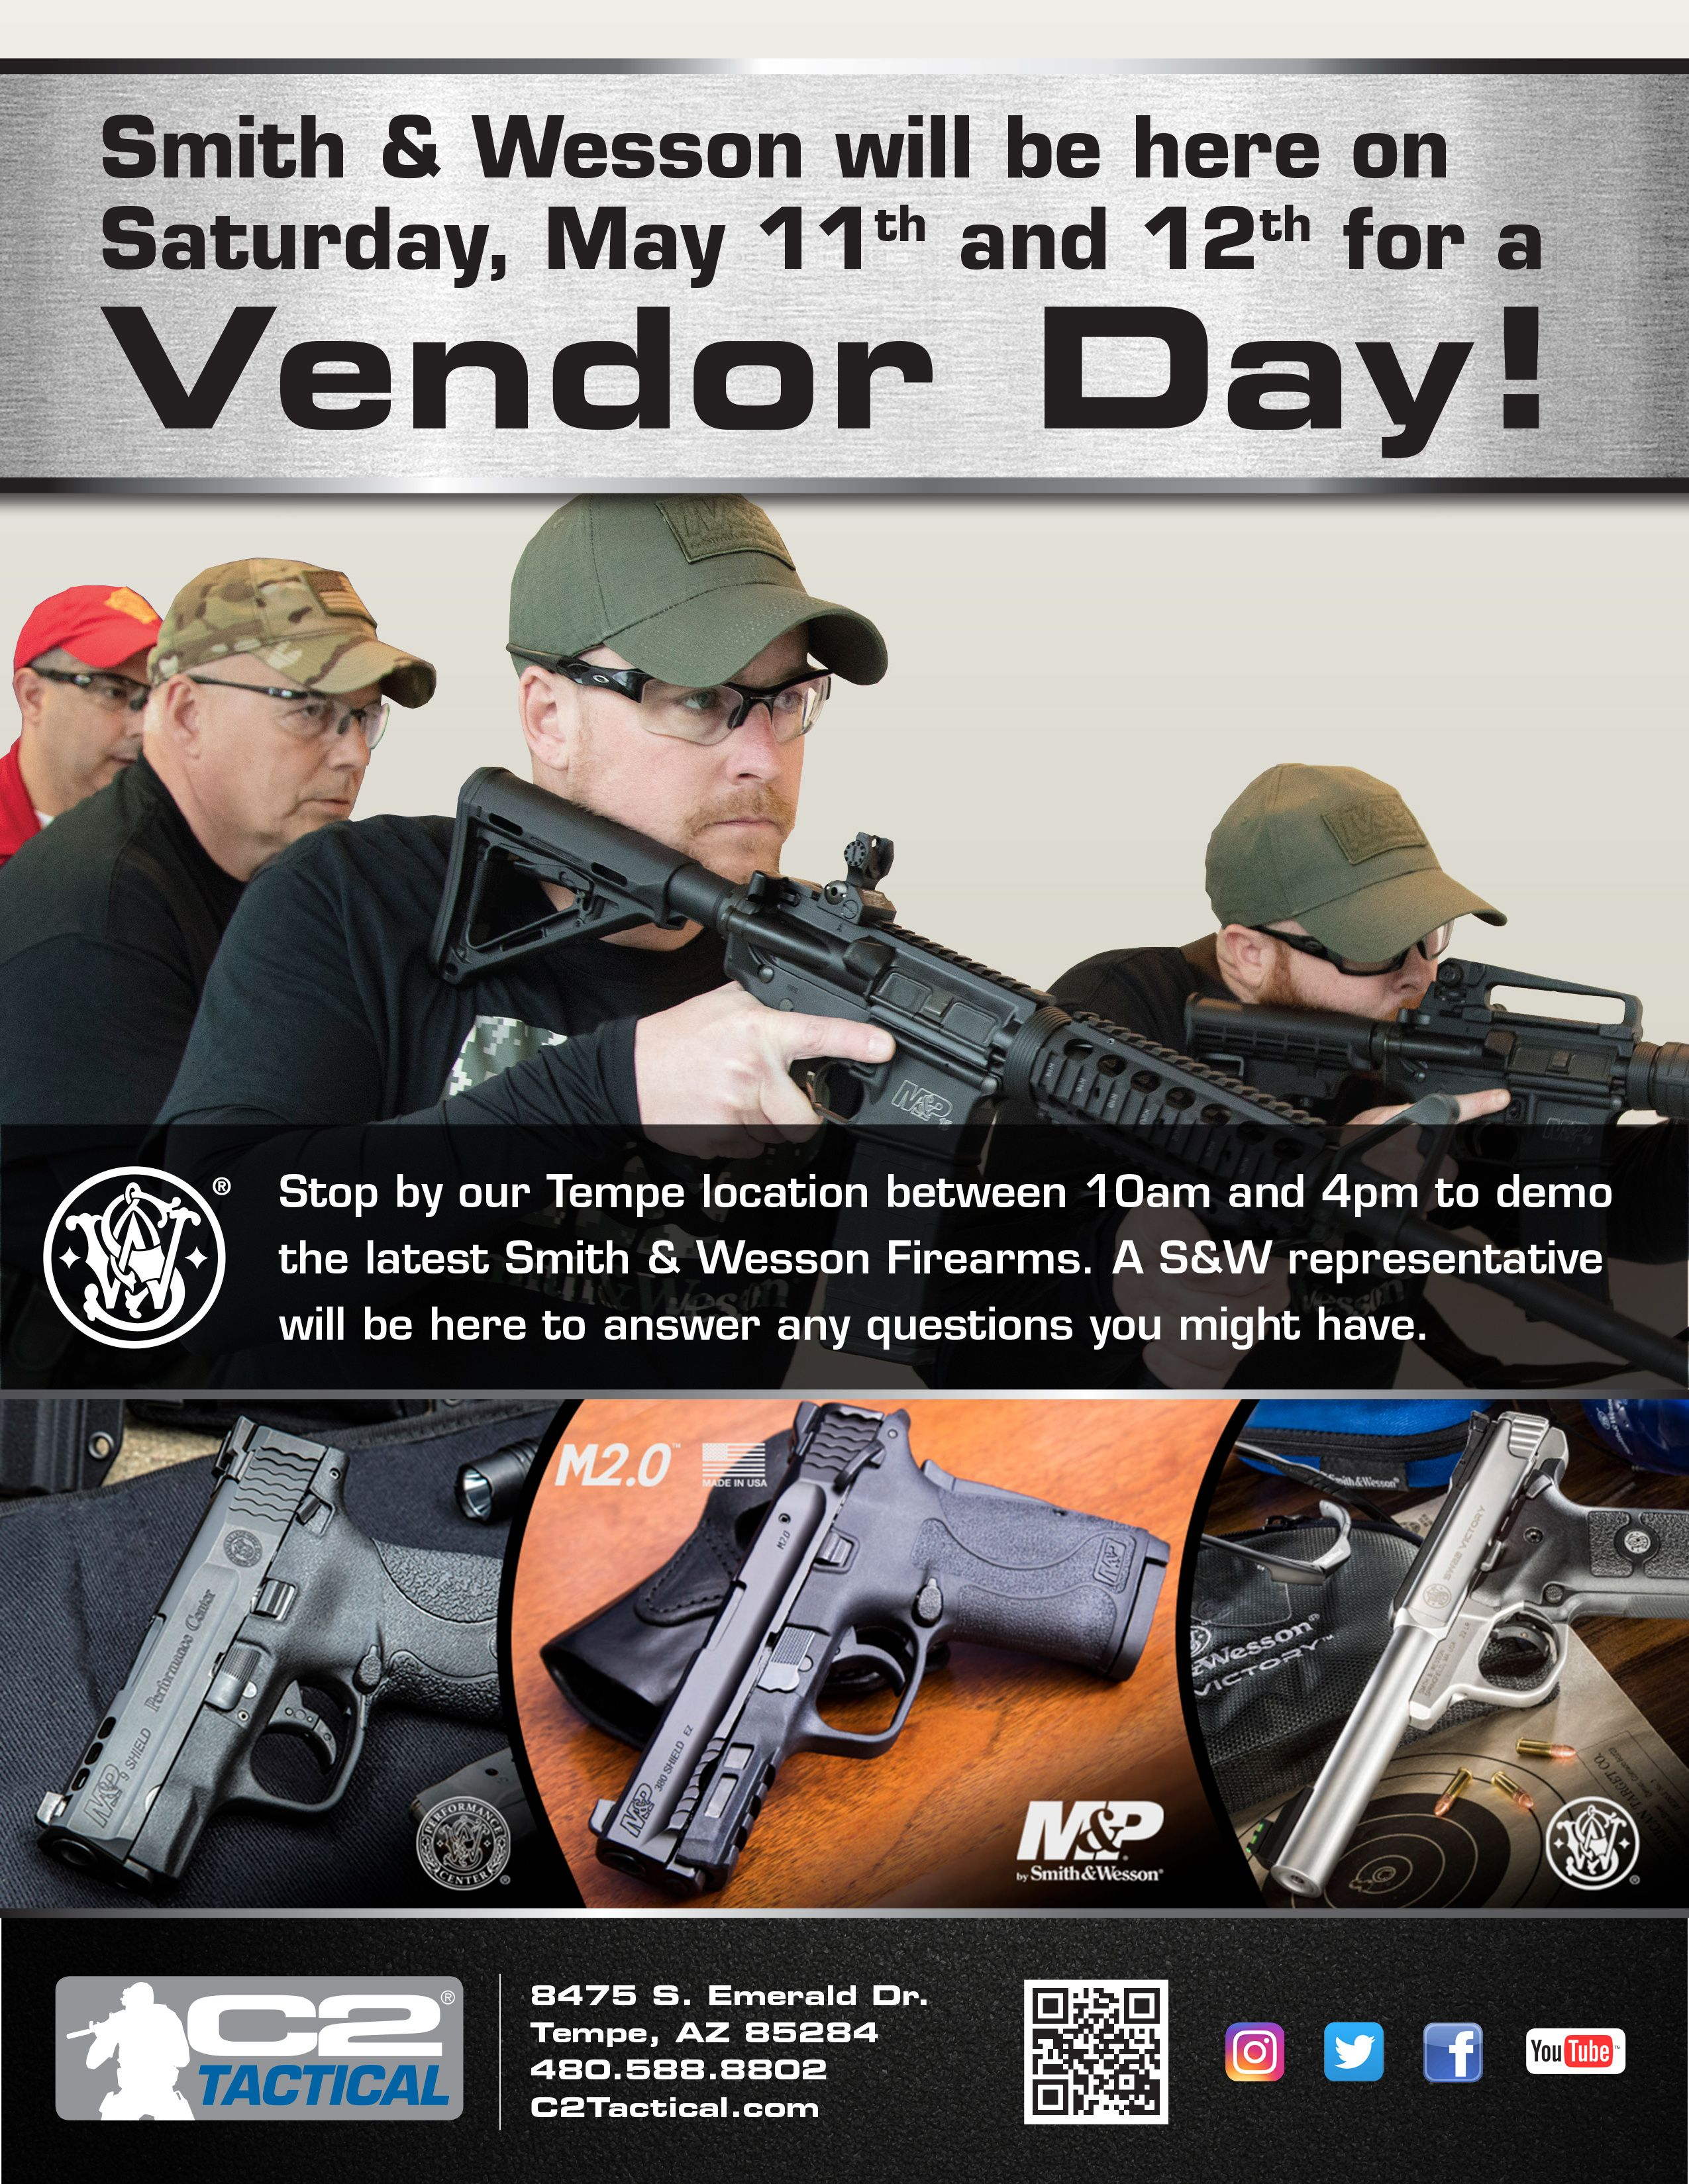 Pin on Events at C2 Tactical